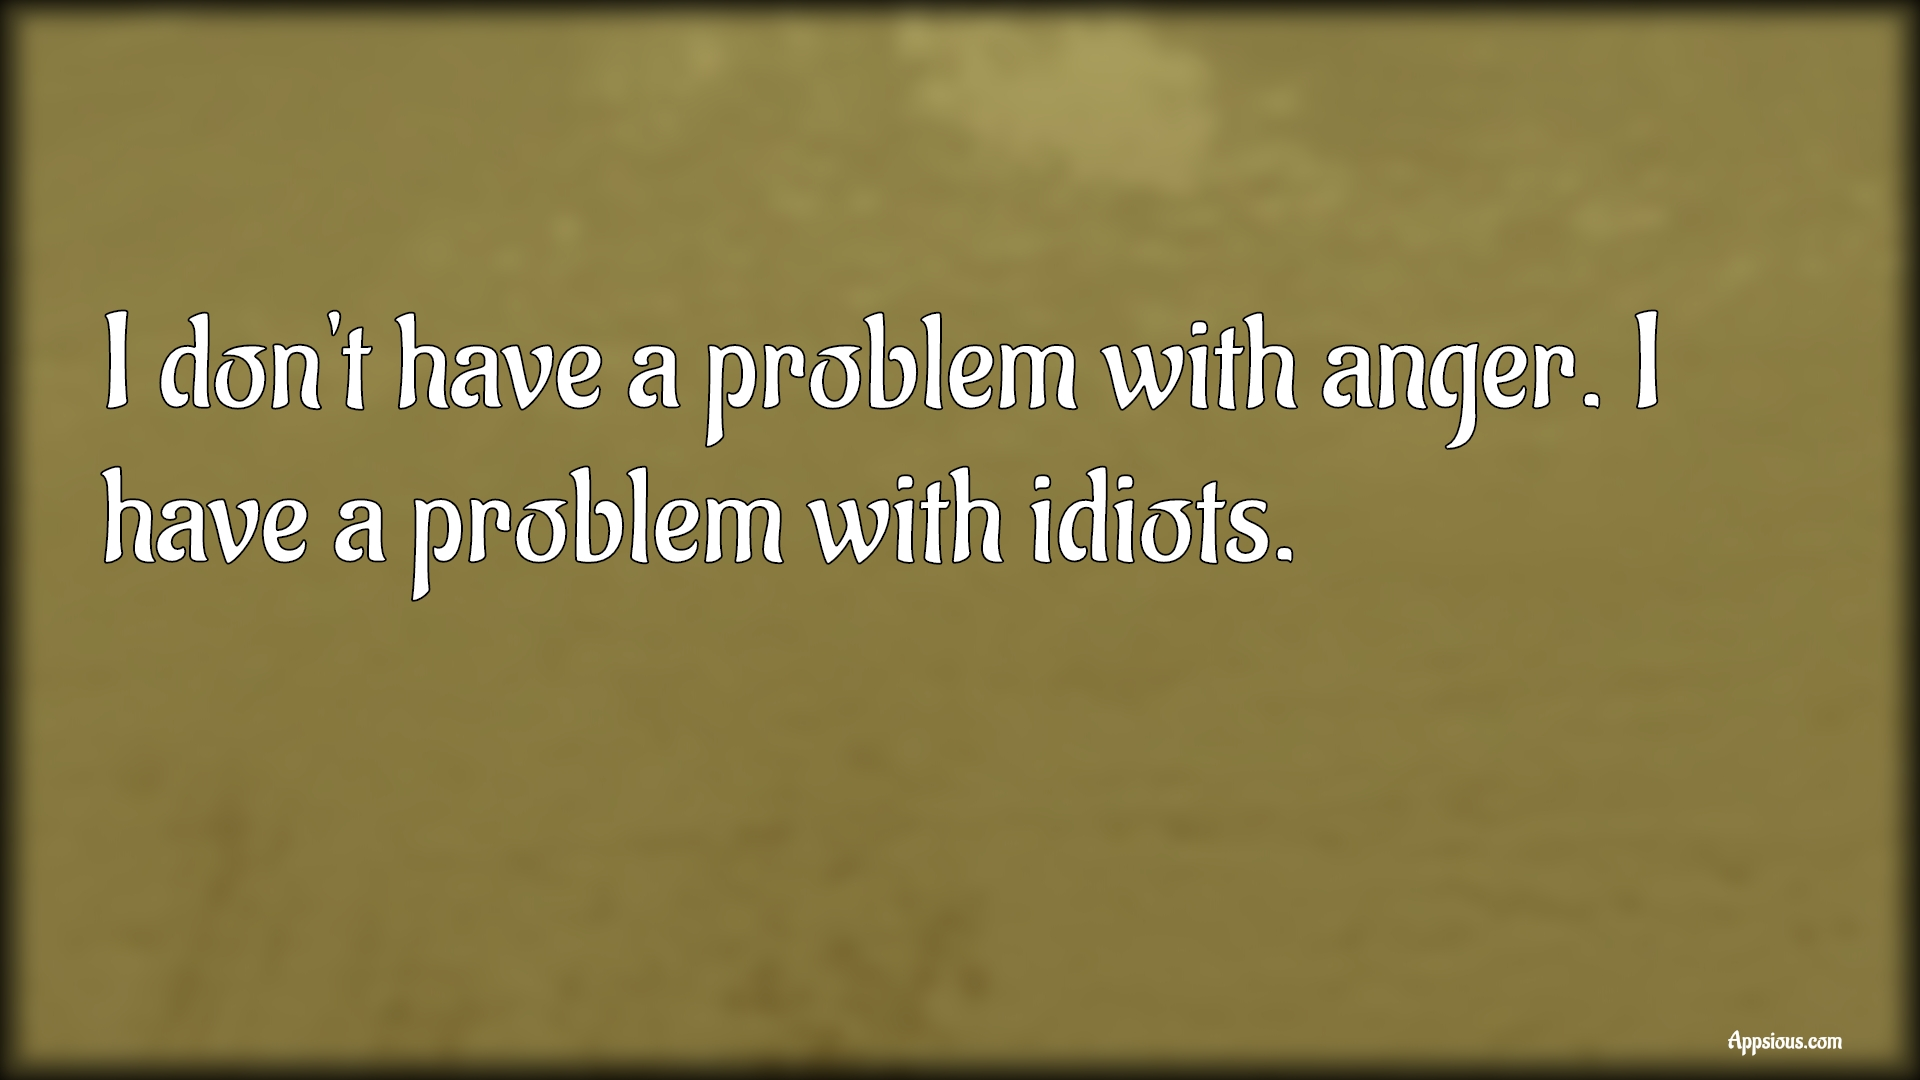 I don't have a problem with anger. I have a problem with idiots.